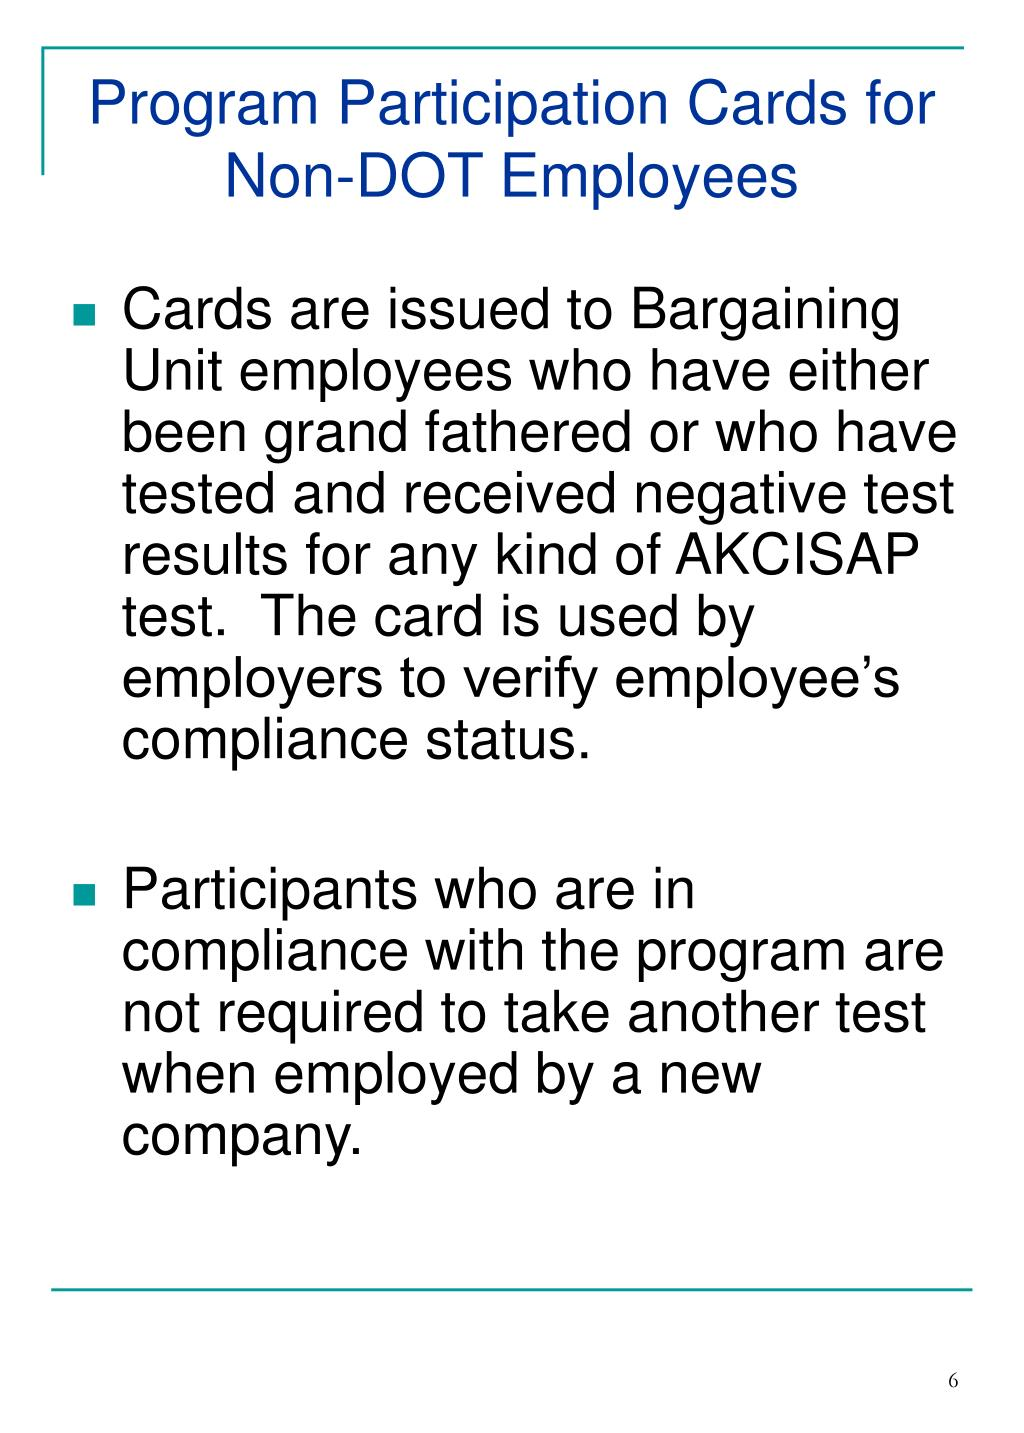 Program Participation Cards for Non-DOT Employees